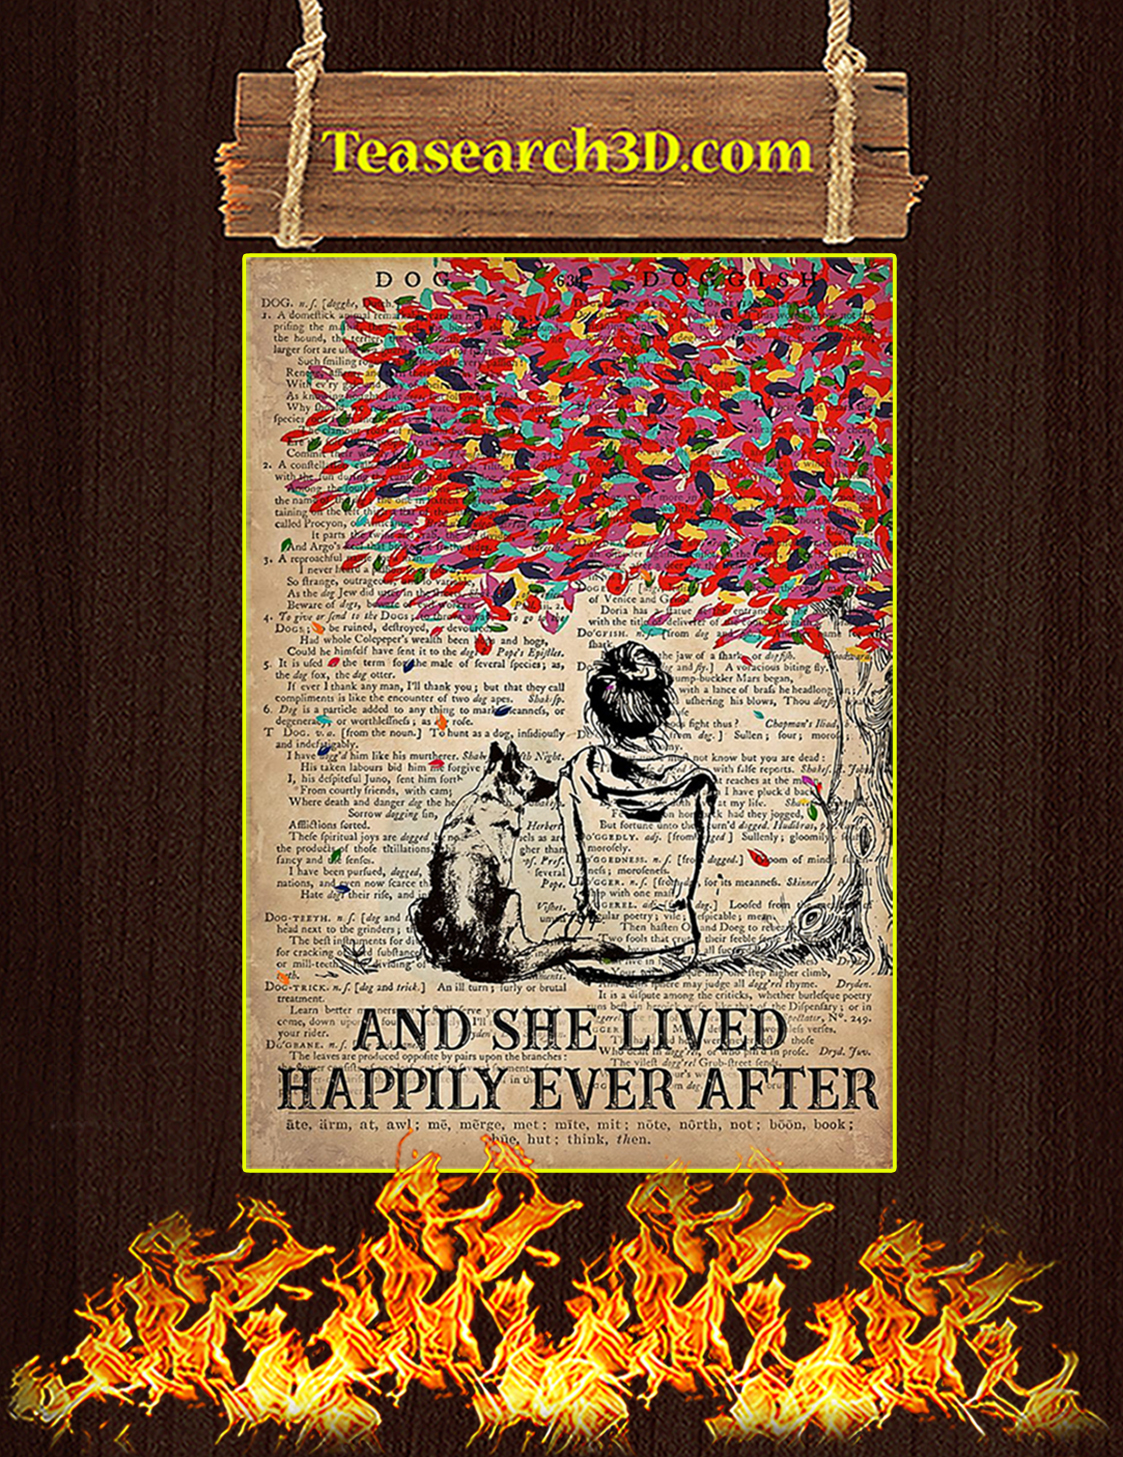 Dog K9 And she lived happily ever after poster A3